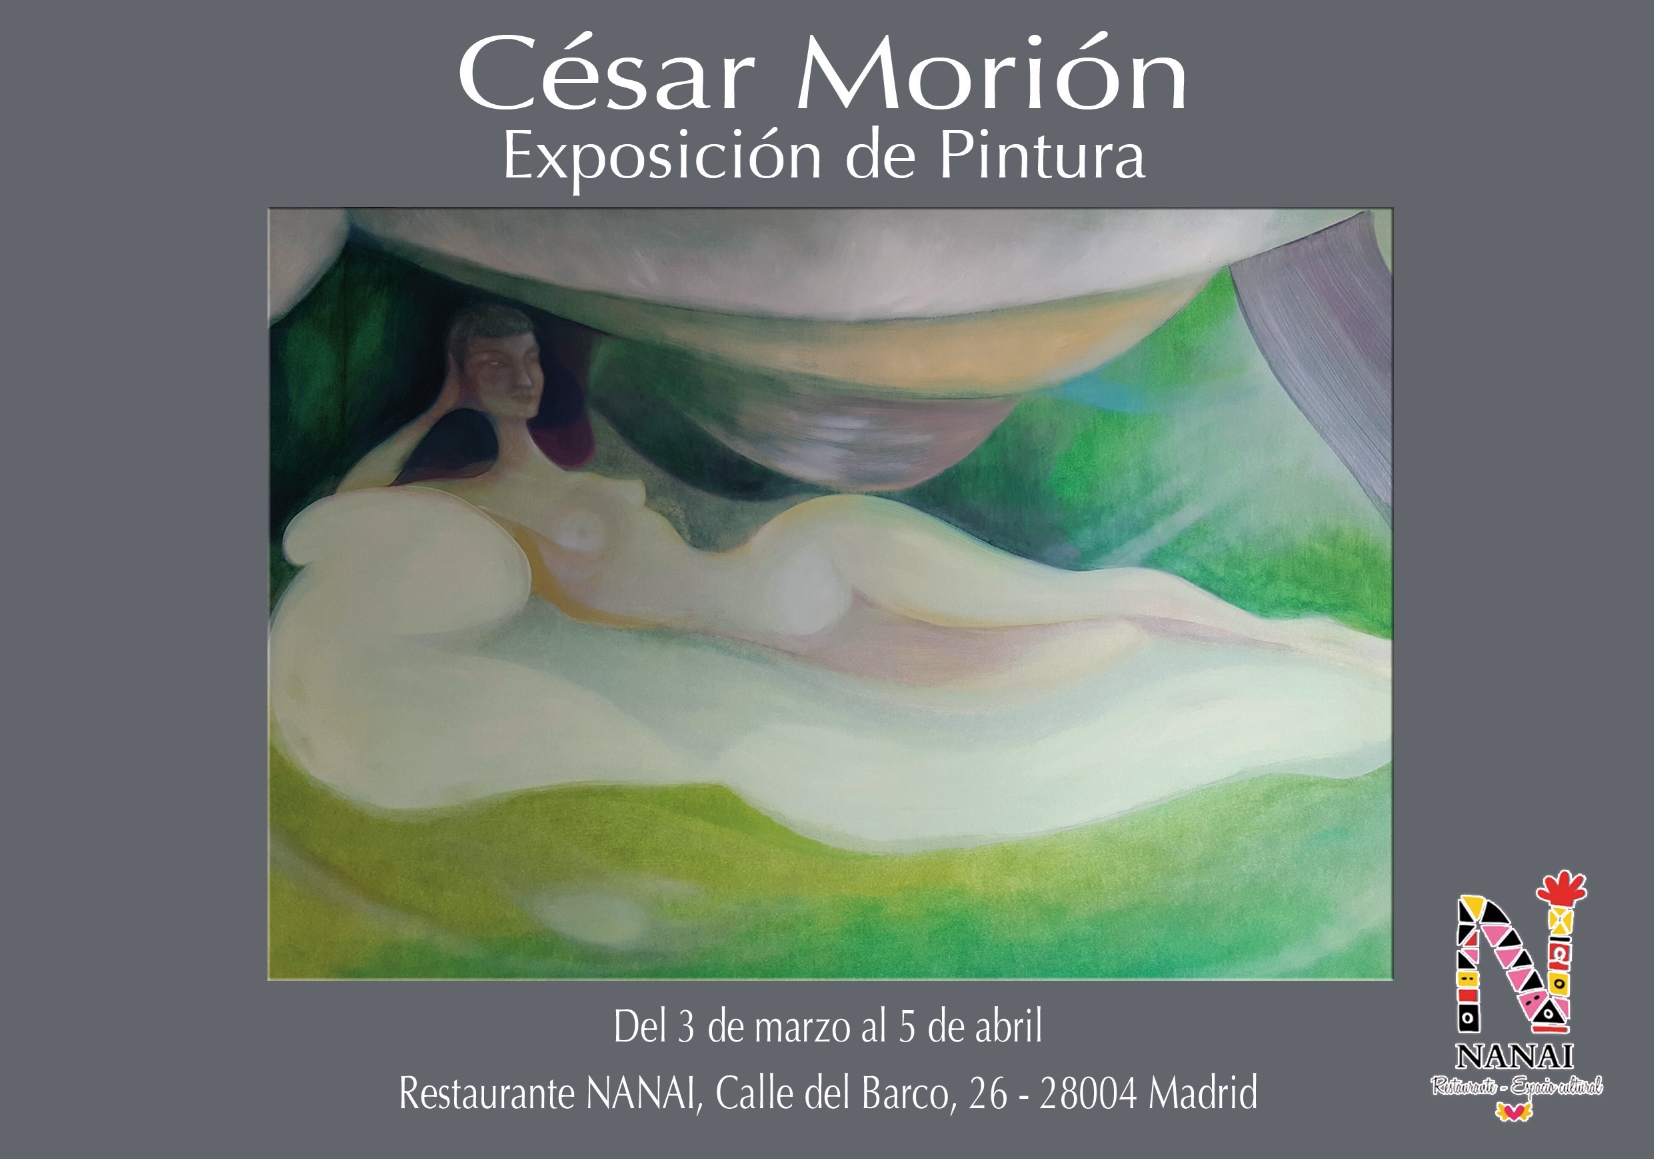 The exhibition was individual and was composed of 12 paintings, eight of 100x70 cm, 2 of 90x70 cm plus two smaller works. Unfortunatly it was retired a few days earlier due to unexpectable and regretable disagreements with the managers of the place (a couple), The management only interested in decorating their place for free and not prone to do anything at all that could improve the final result of the show rejeced all simple and easy improvements on light (paintings were left in darkness) also being unusually unrustworthy. I cannot therefore recommend to any genuine artist this place to exhibit .